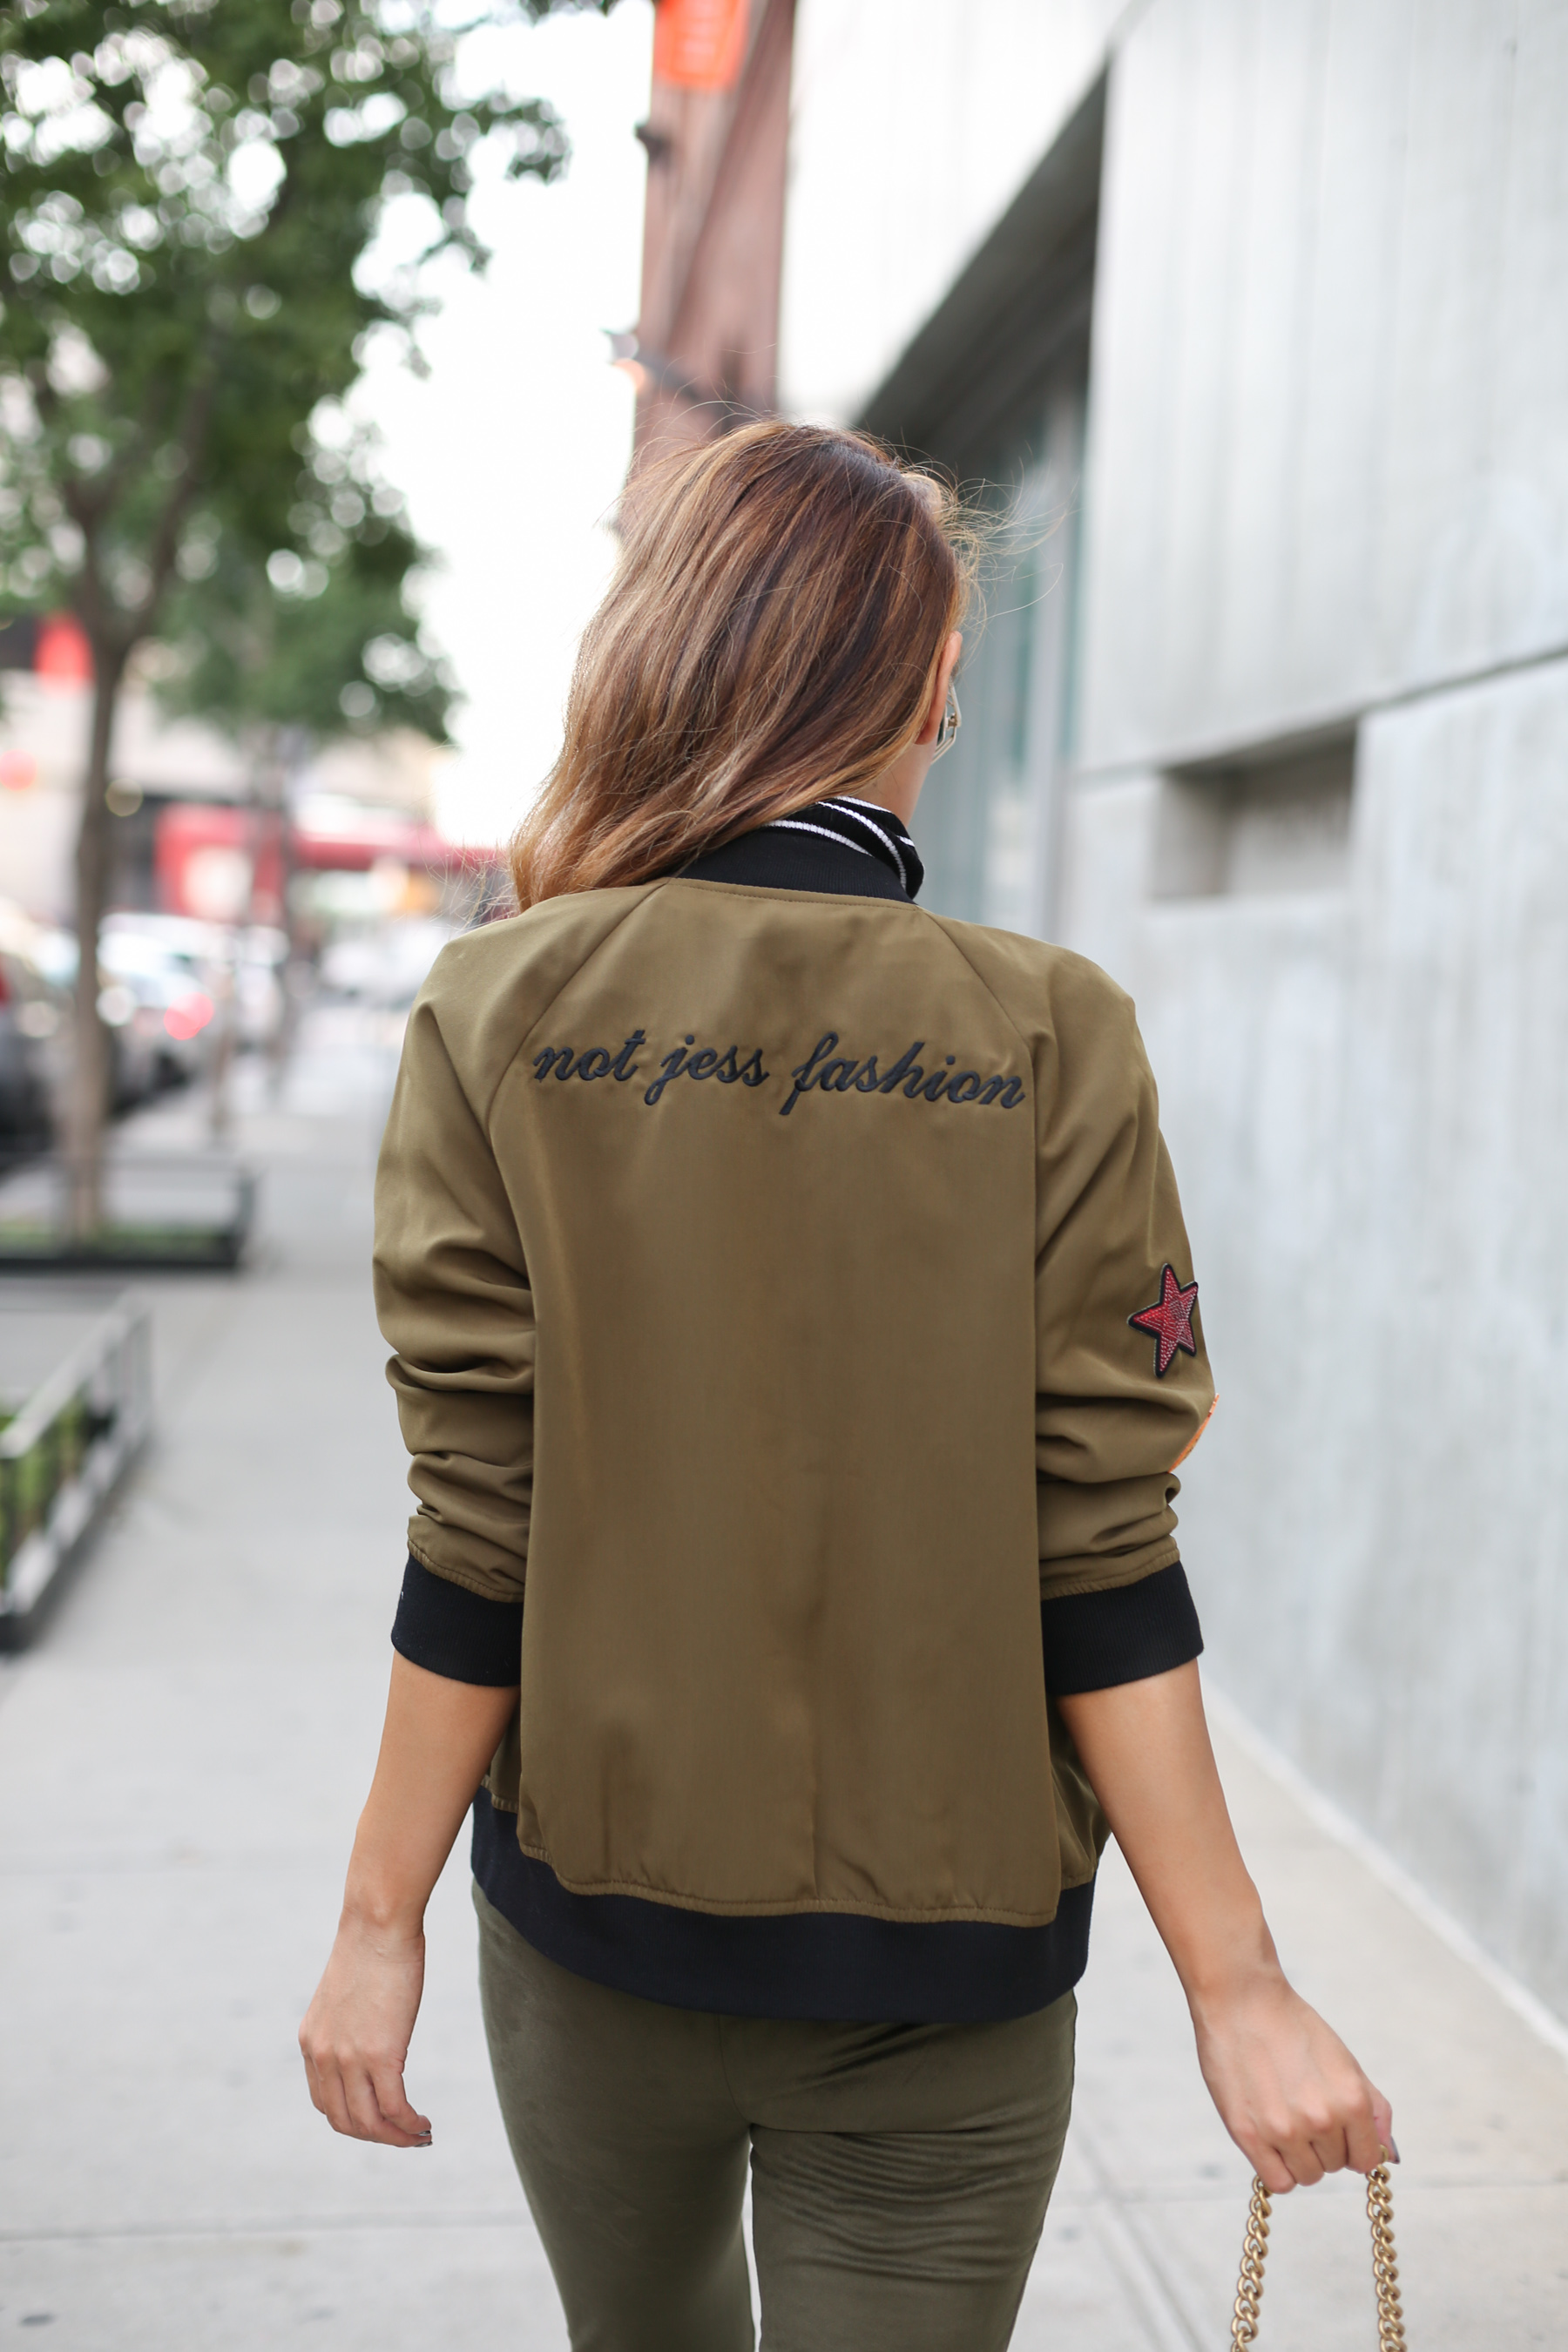 Lord & Taylor, Bomber Jacket, NOTJESSFASHION, NYC, Top Fashion Blogger, Lifestyle Blogger, Travel Blogger